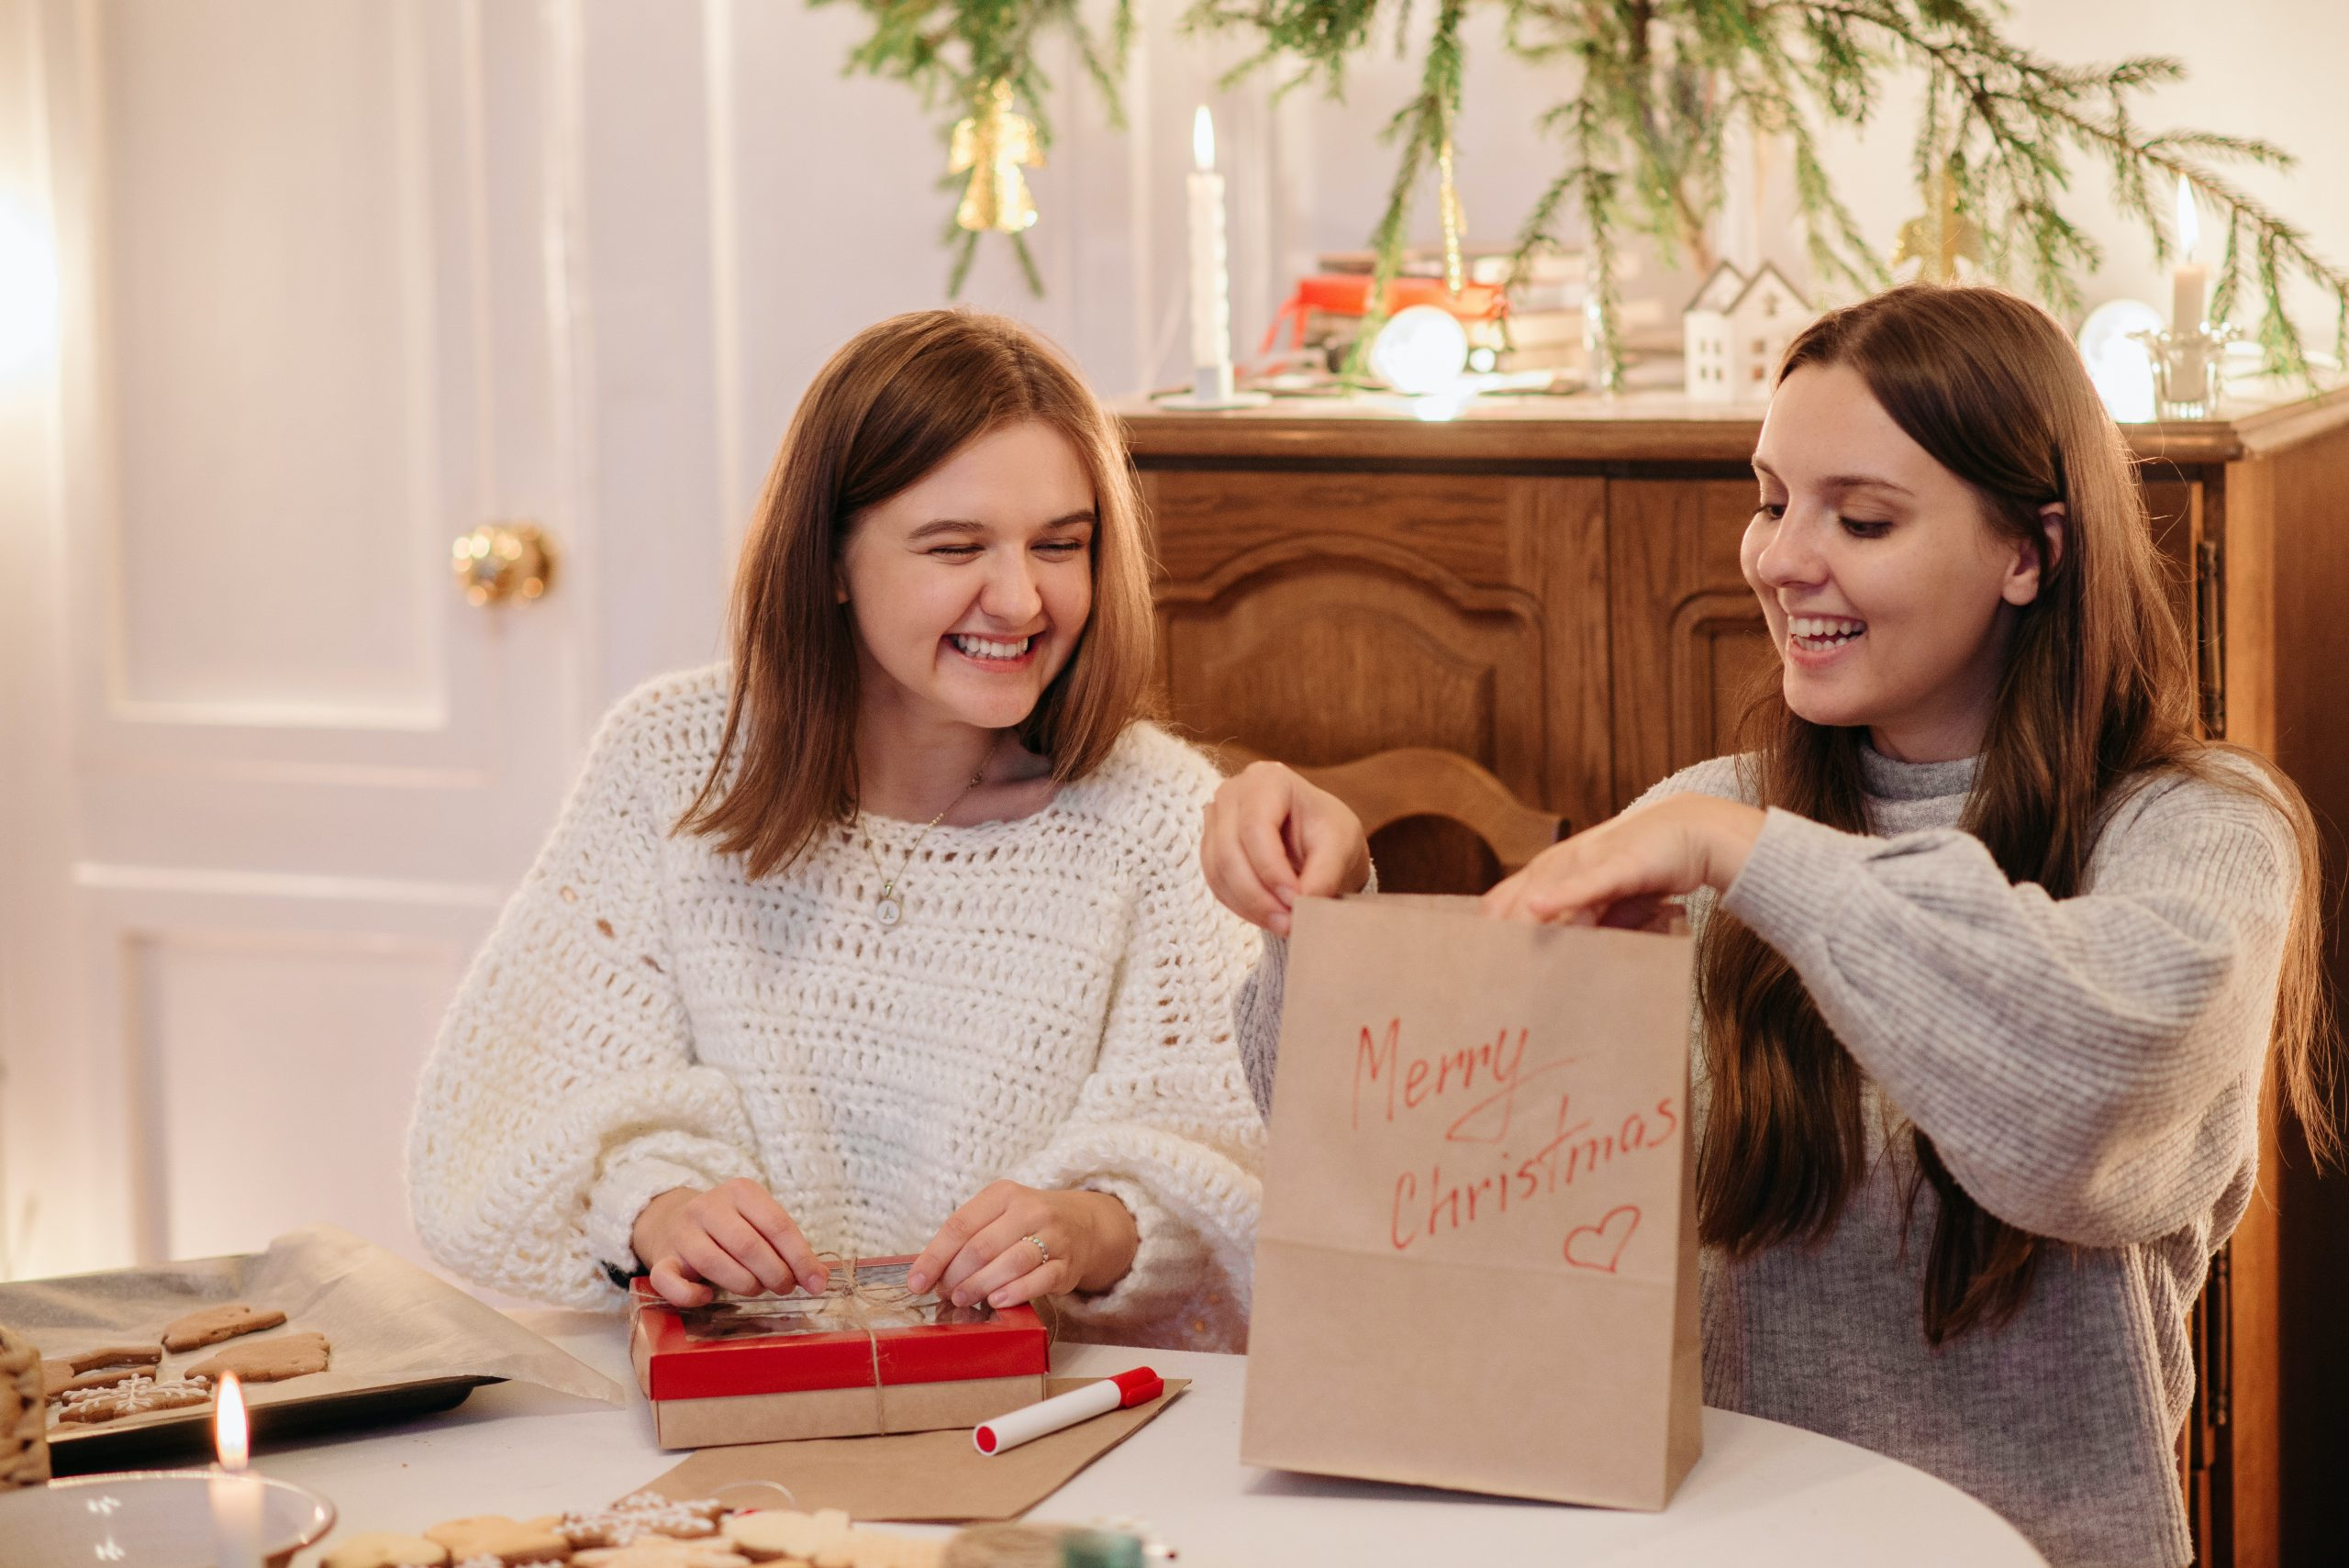 Friends doing some last-minute gift wrapping